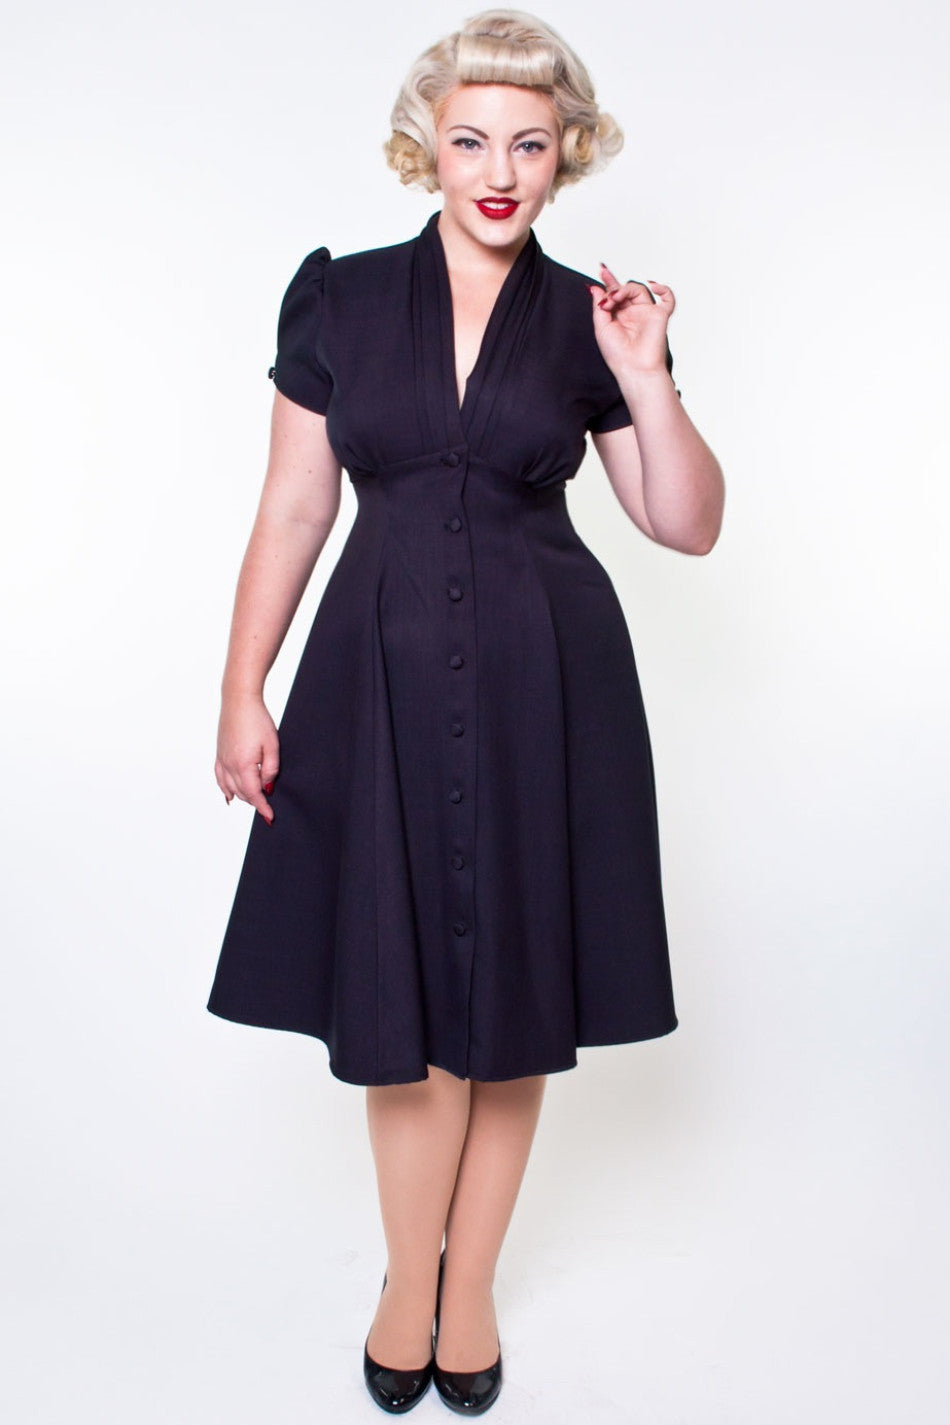 Vintage Tea Dresses, Floral Tea Dresses, Tea Length Dresses Manhattan Dress - Black $120.00 AT vintagedancer.com